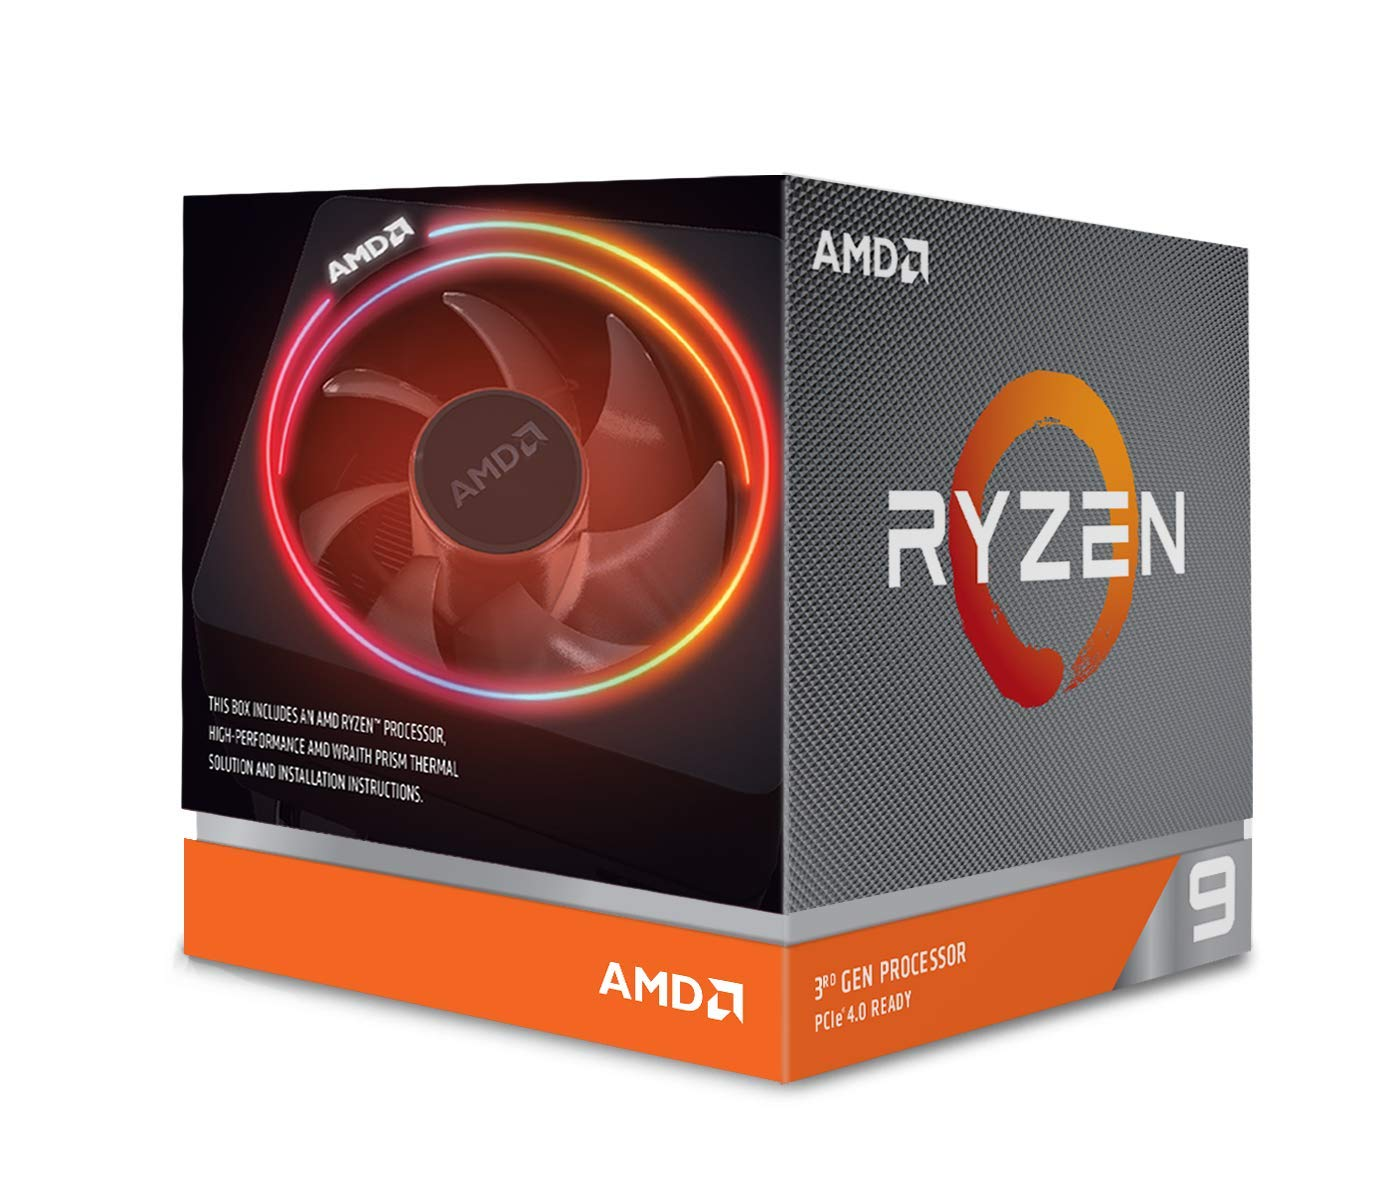 AMD Ryzen 9 3900X 12-Core Processor with Wraith Prism LED Cooler + Borderlands 3 + The Outer Worlds